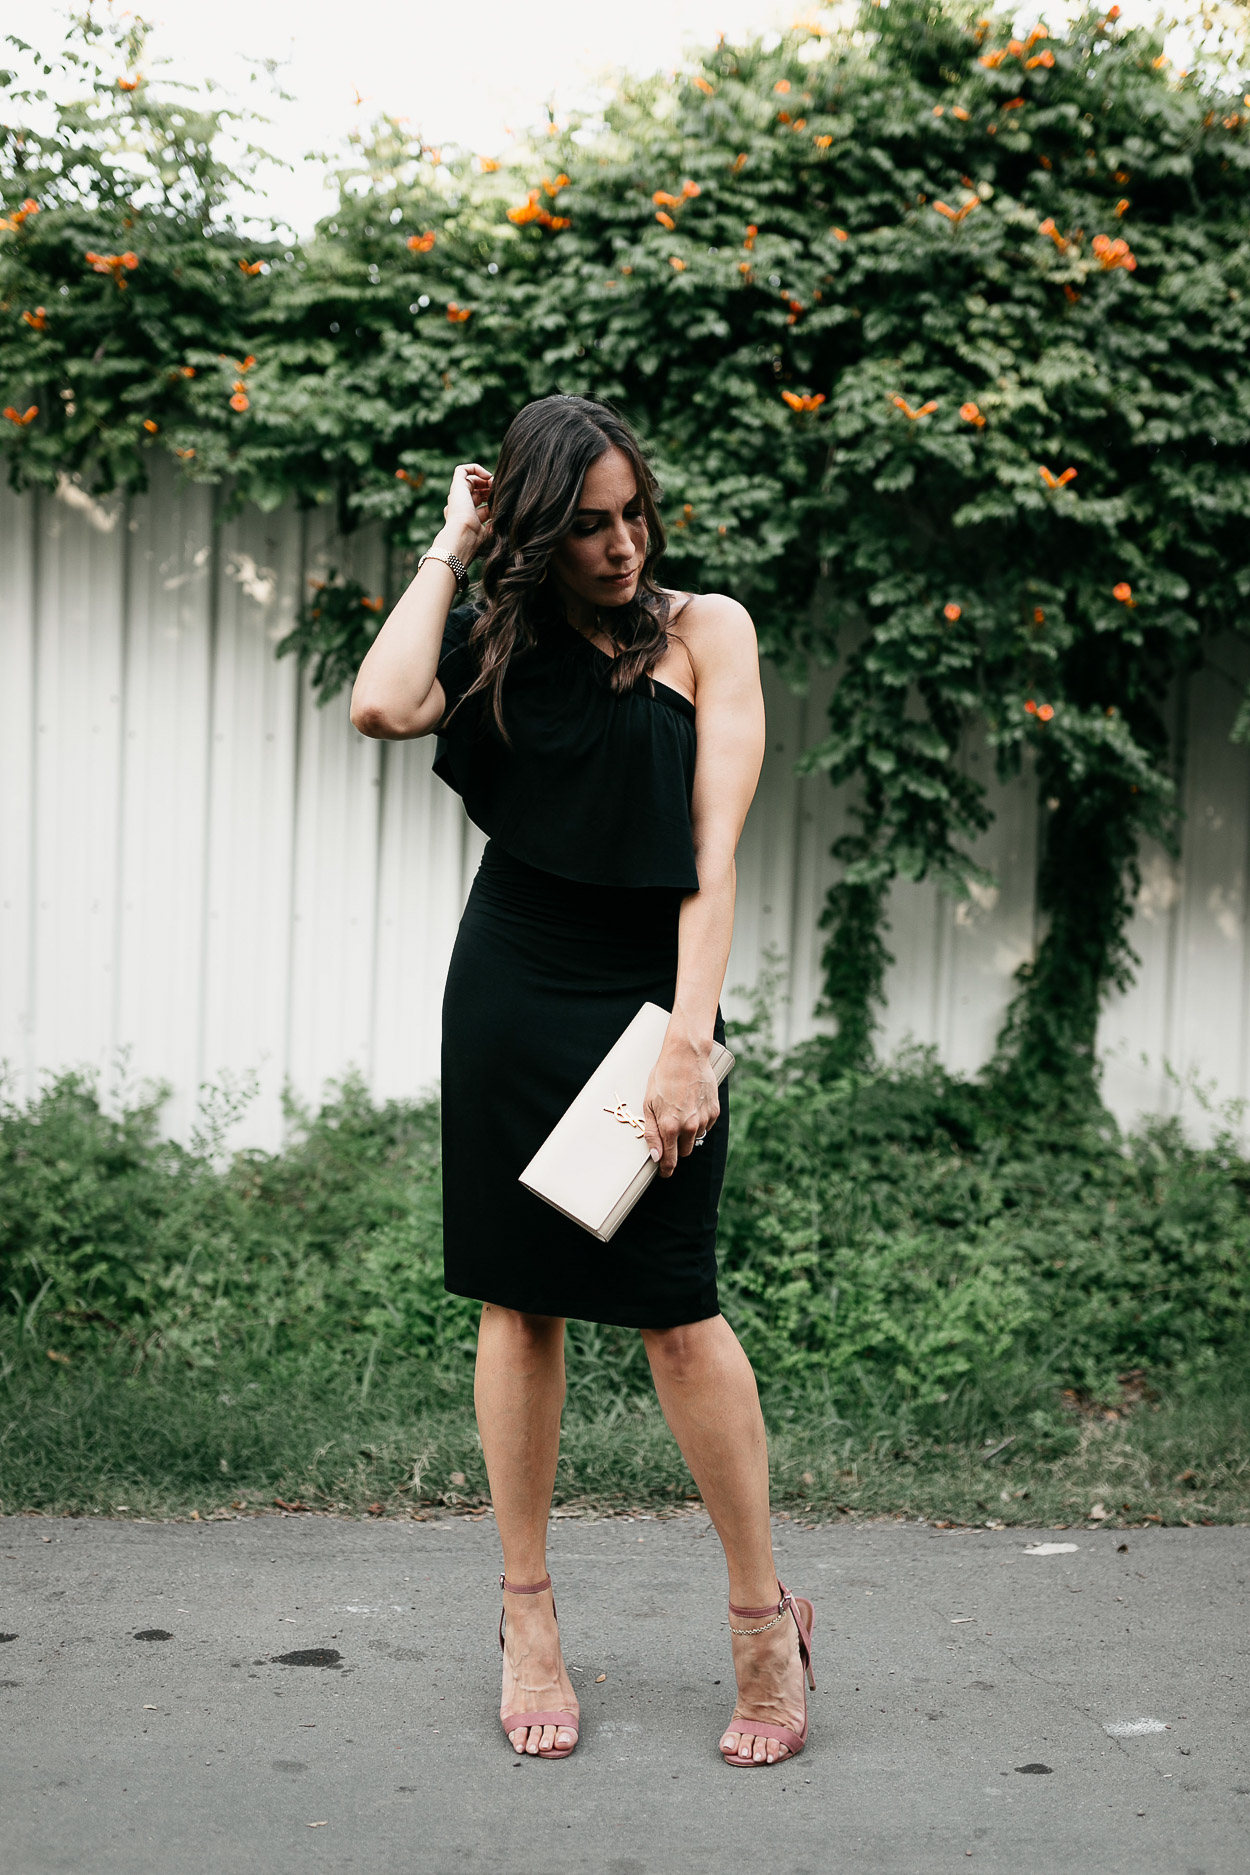 Wear a simple Three Dots black ruffle dress for your next date night as styled by A Glam Lifestyle blogger Amanda with chic details like mauve heels and nude YSL clutch